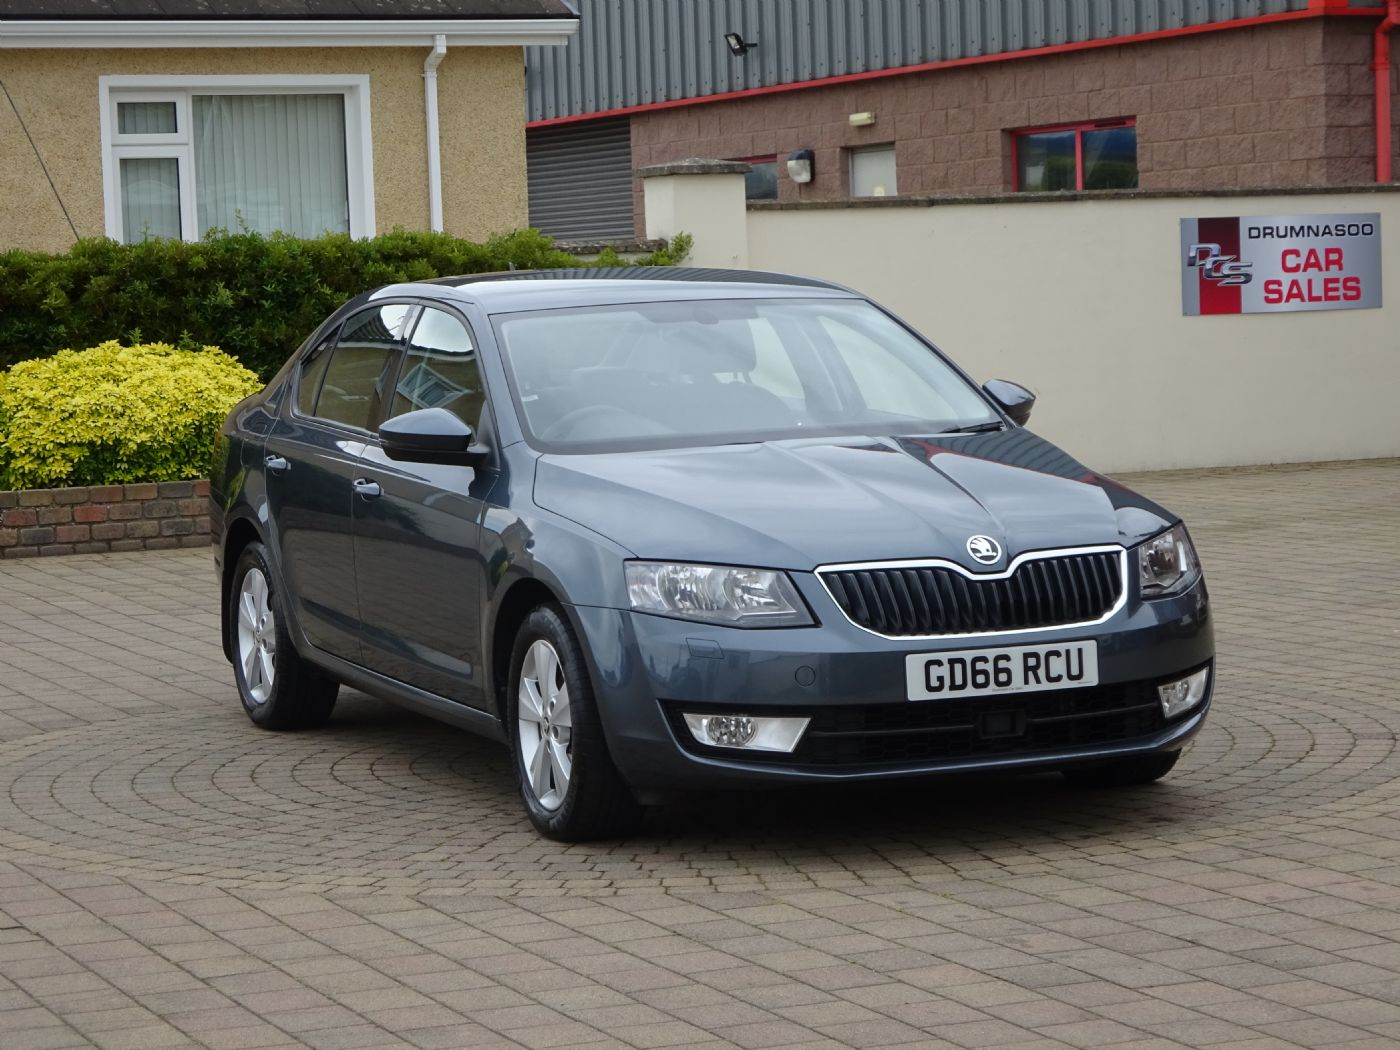 Skoda Octavia SE L 2.0 TDI, £20 Road tax / Sat nav / Part leather